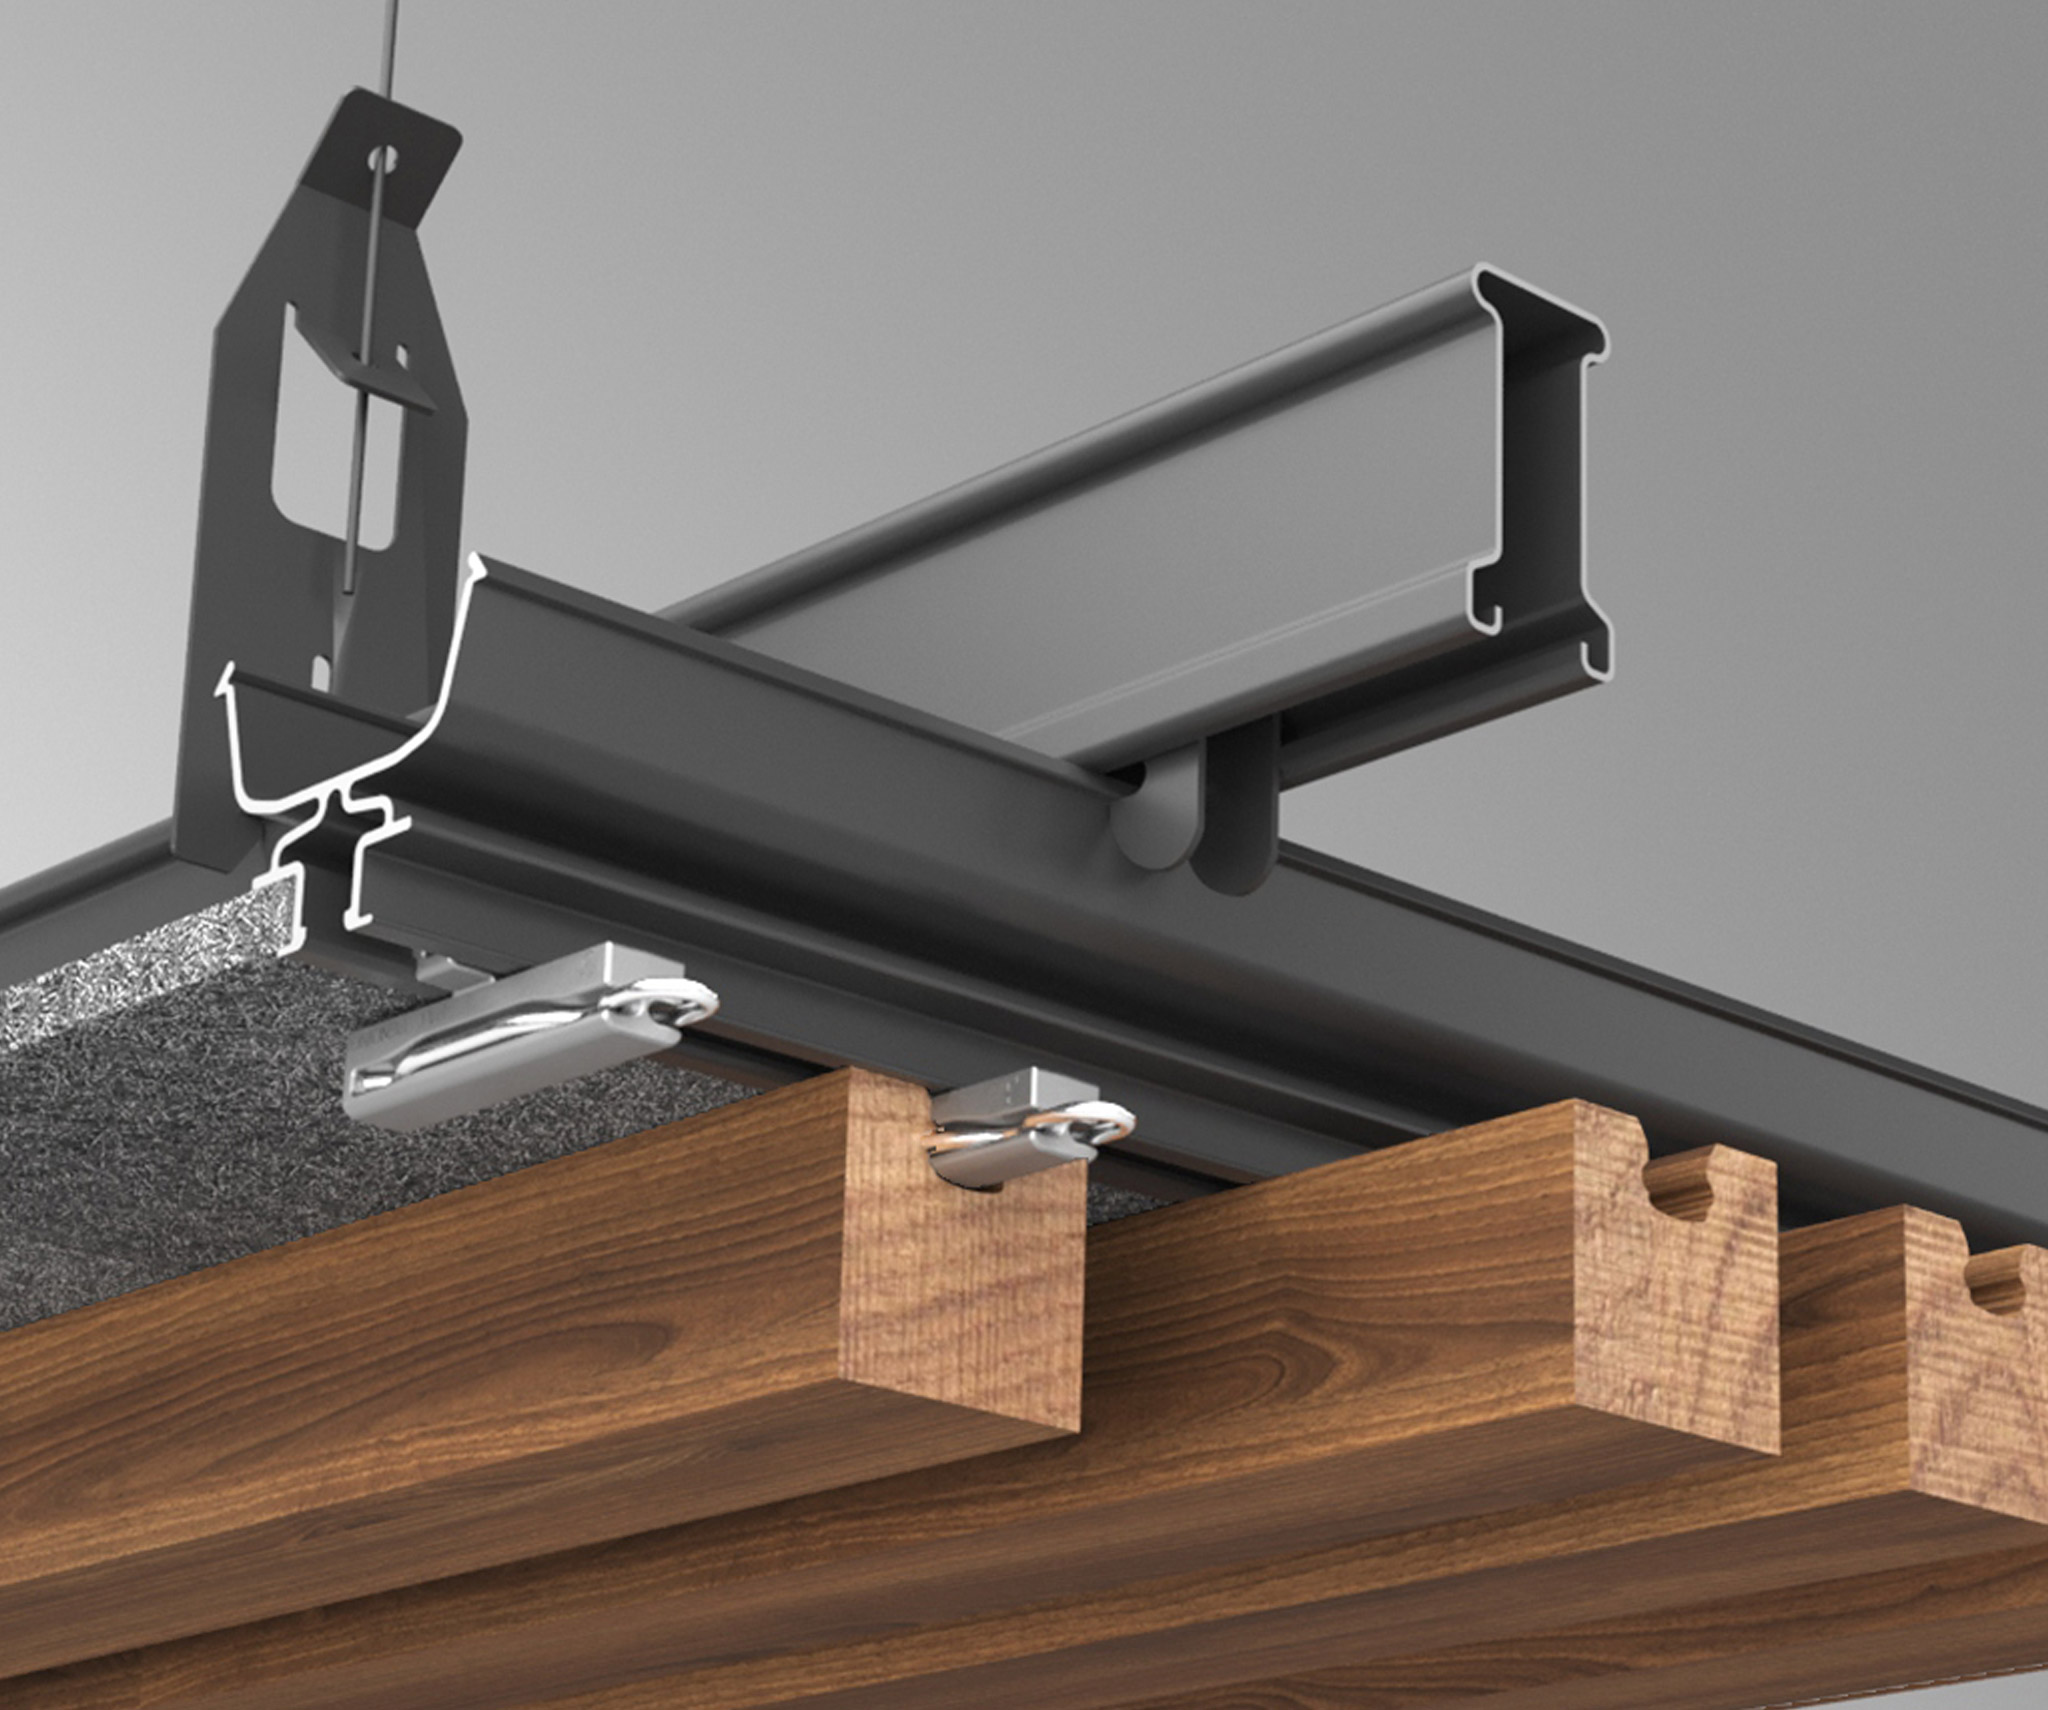 Suspended ceiling mounting track